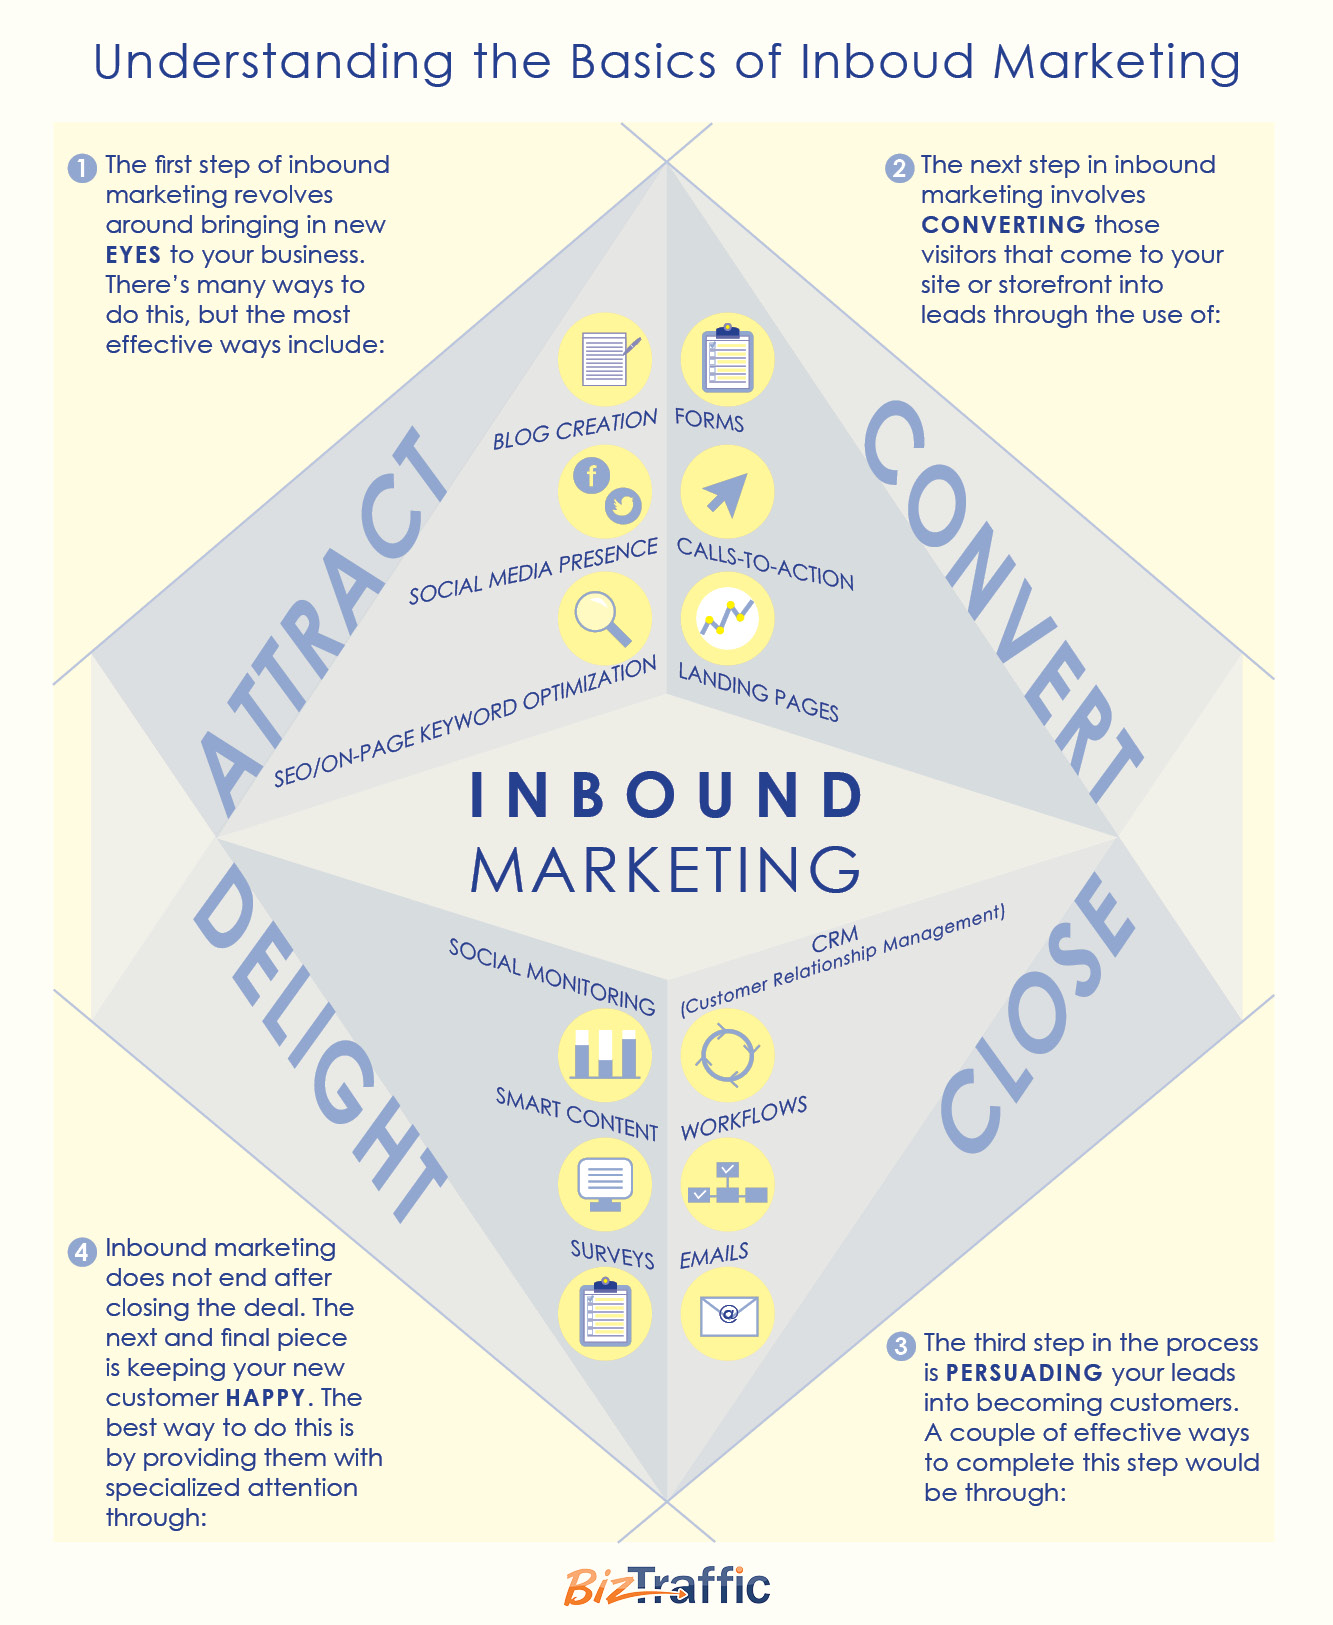 Understanding the Basics of Inbound Marketing